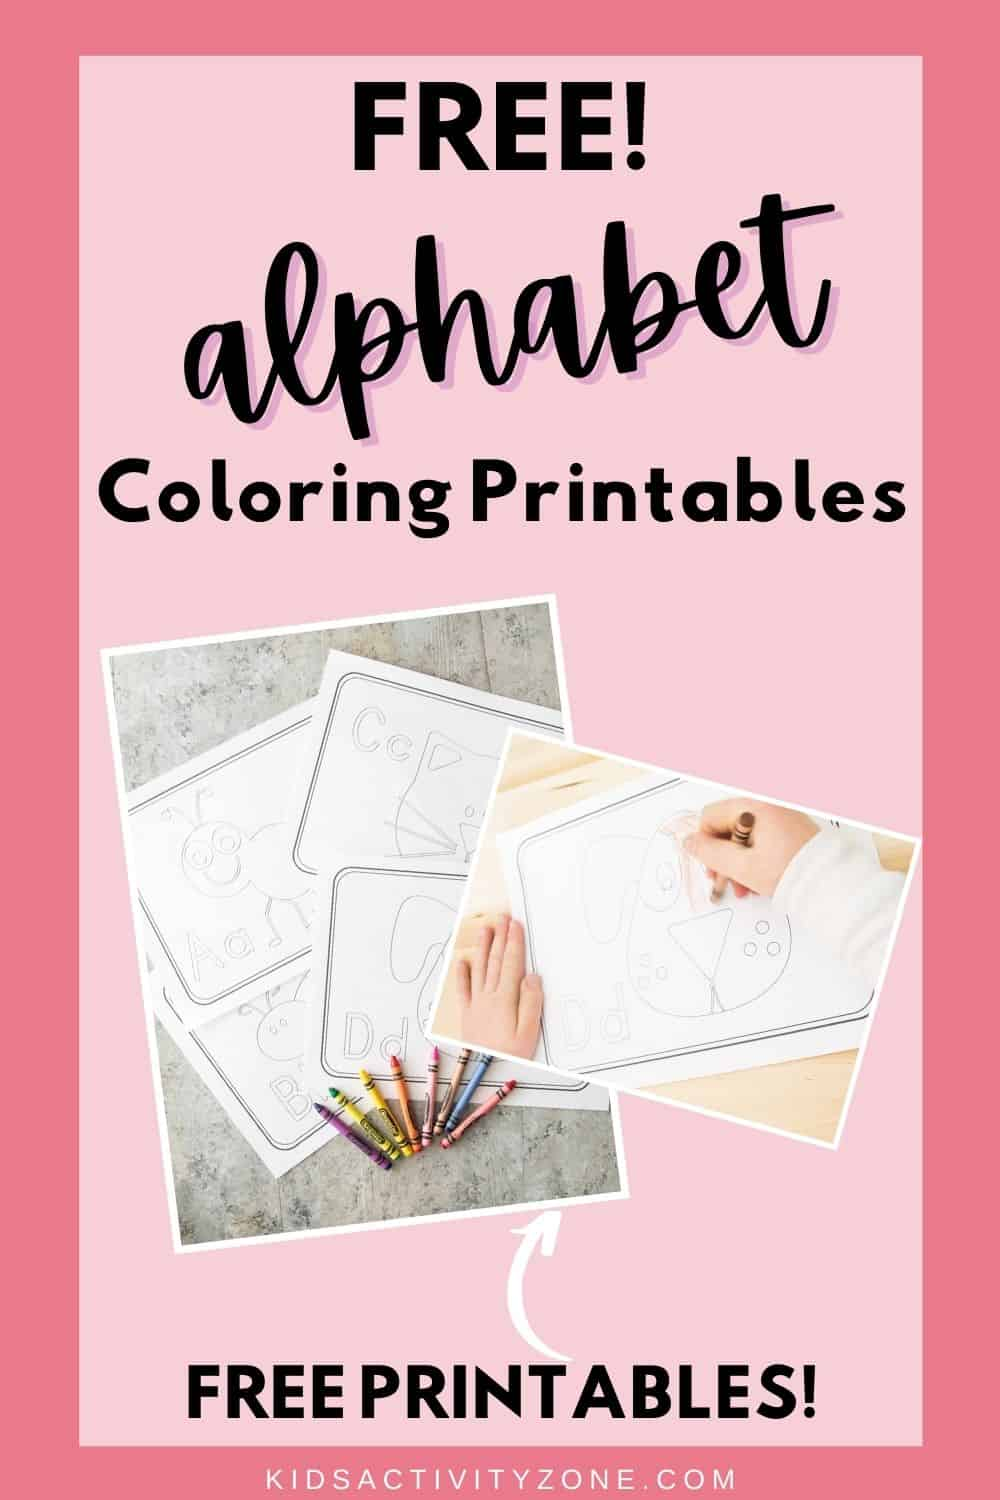 Alphabet Coloring Sheet Printable are the perfect easy activity for children learning their ABCs. Each picture has the letter of the alphabet in both upper and lowercase plus a cute picture to color.